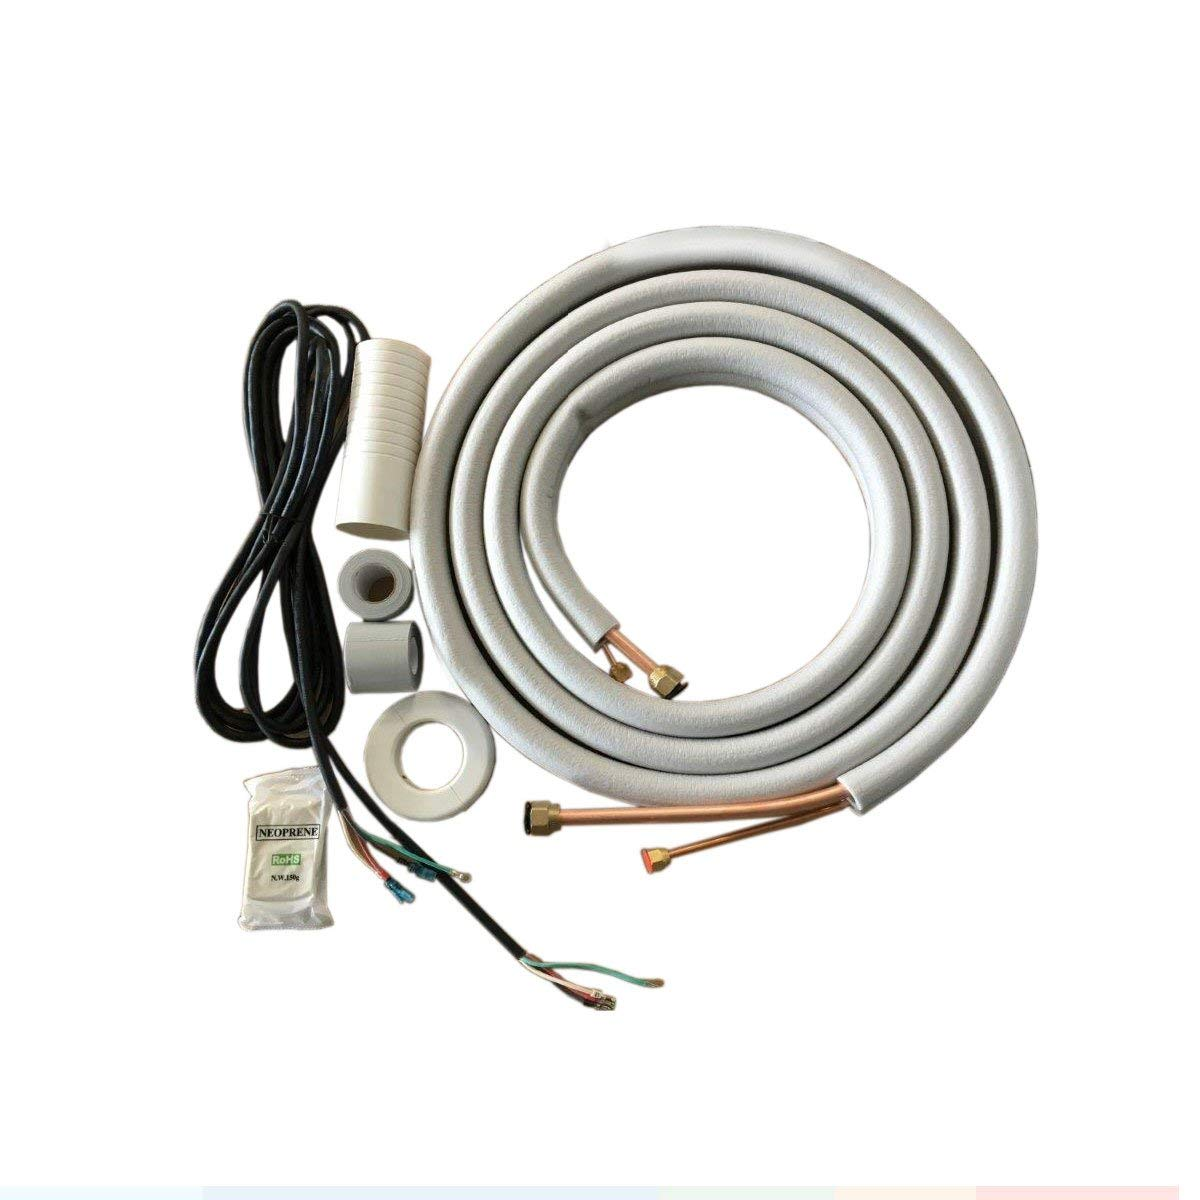 1 4 X 3 8 Pre Flared Insulated Copper Line Set Communication Wires Wiring Air Conditioner Ductless Mini Split Heat Pump Models 25ft Wire